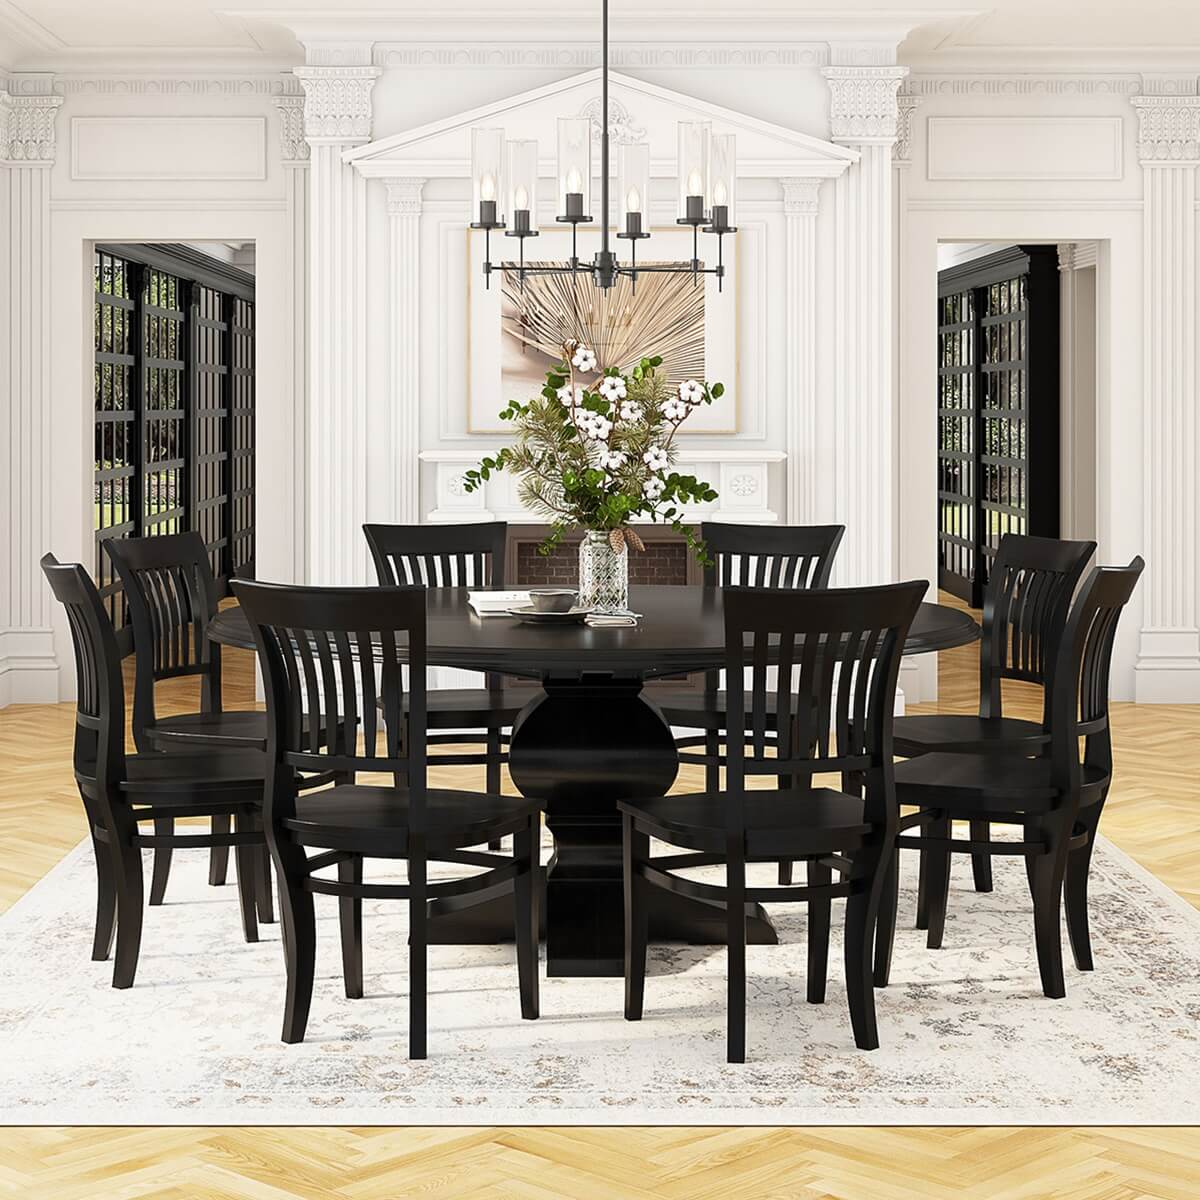 Sierra Nevada Large Round Rustic Solid Wood Dining Table   Chair Set. Nevada Large Round Rustic Solid Wood Dining Table   Chair Set